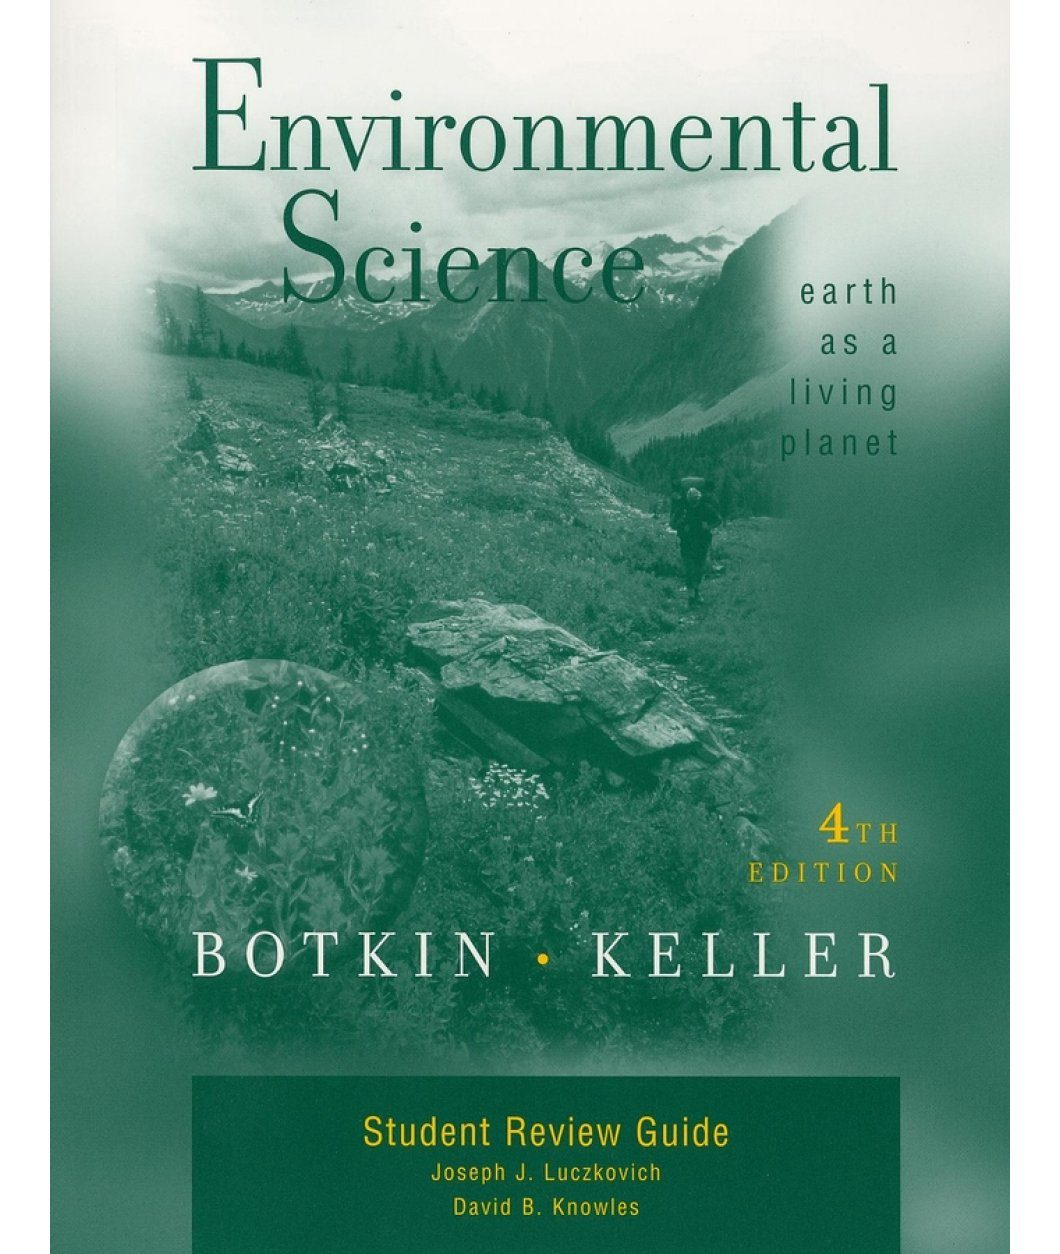 Environmental Science, Student Review Guide